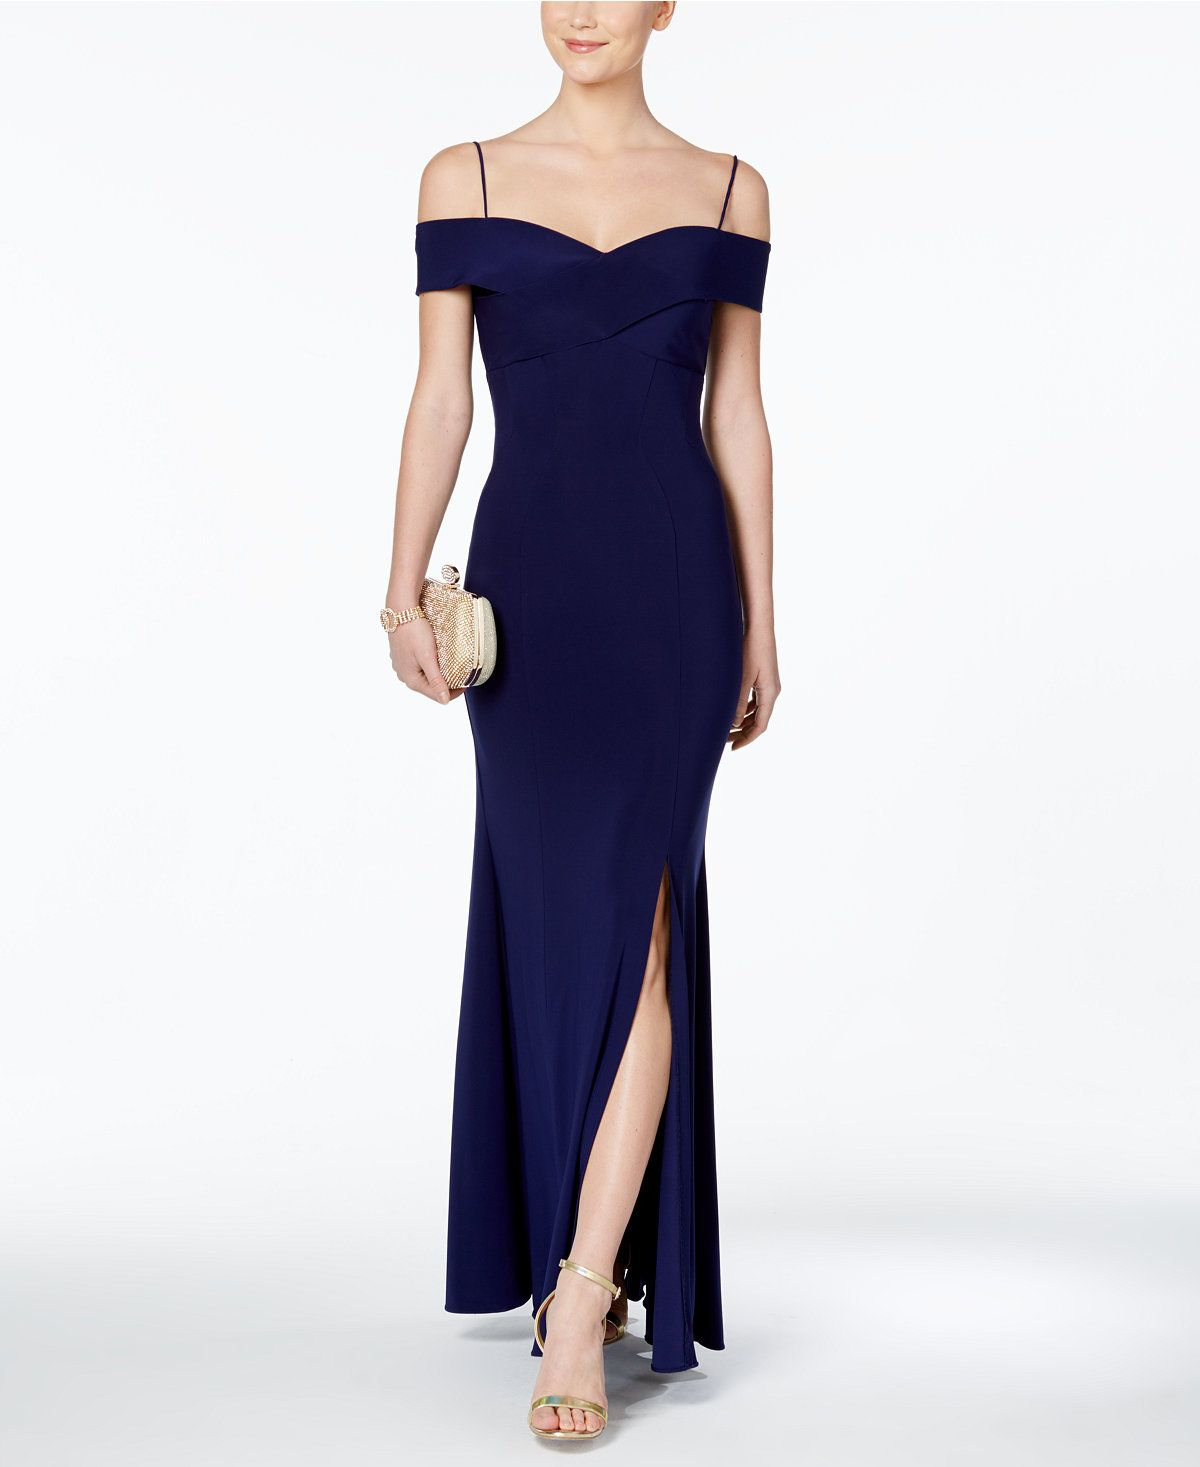 Nightway Women/'s Glitter Lace Off-The-Shoulder Gown